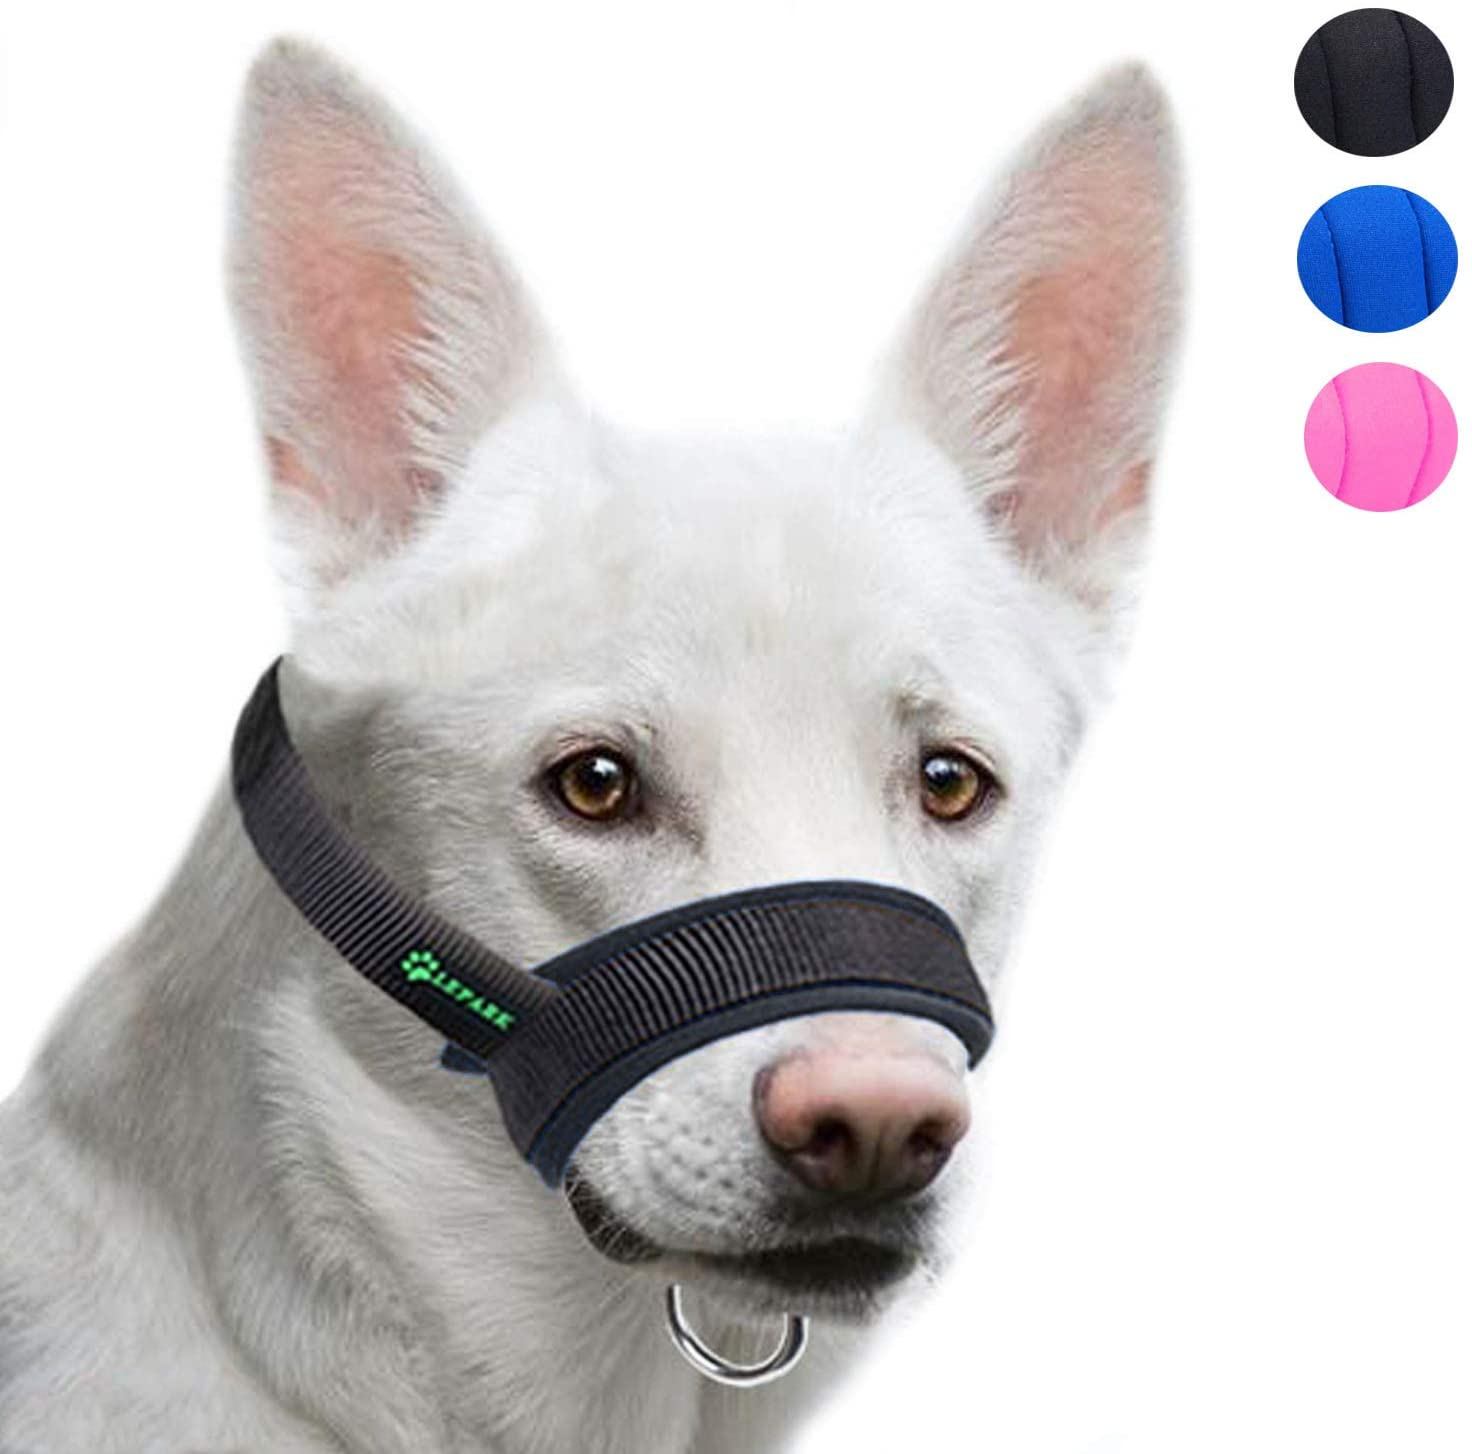 Lepark Dog Muzzle with Fabric for Small, Medium and Large Dogs, Anti Biting, Chewing, Adjustable Neck, Breathable